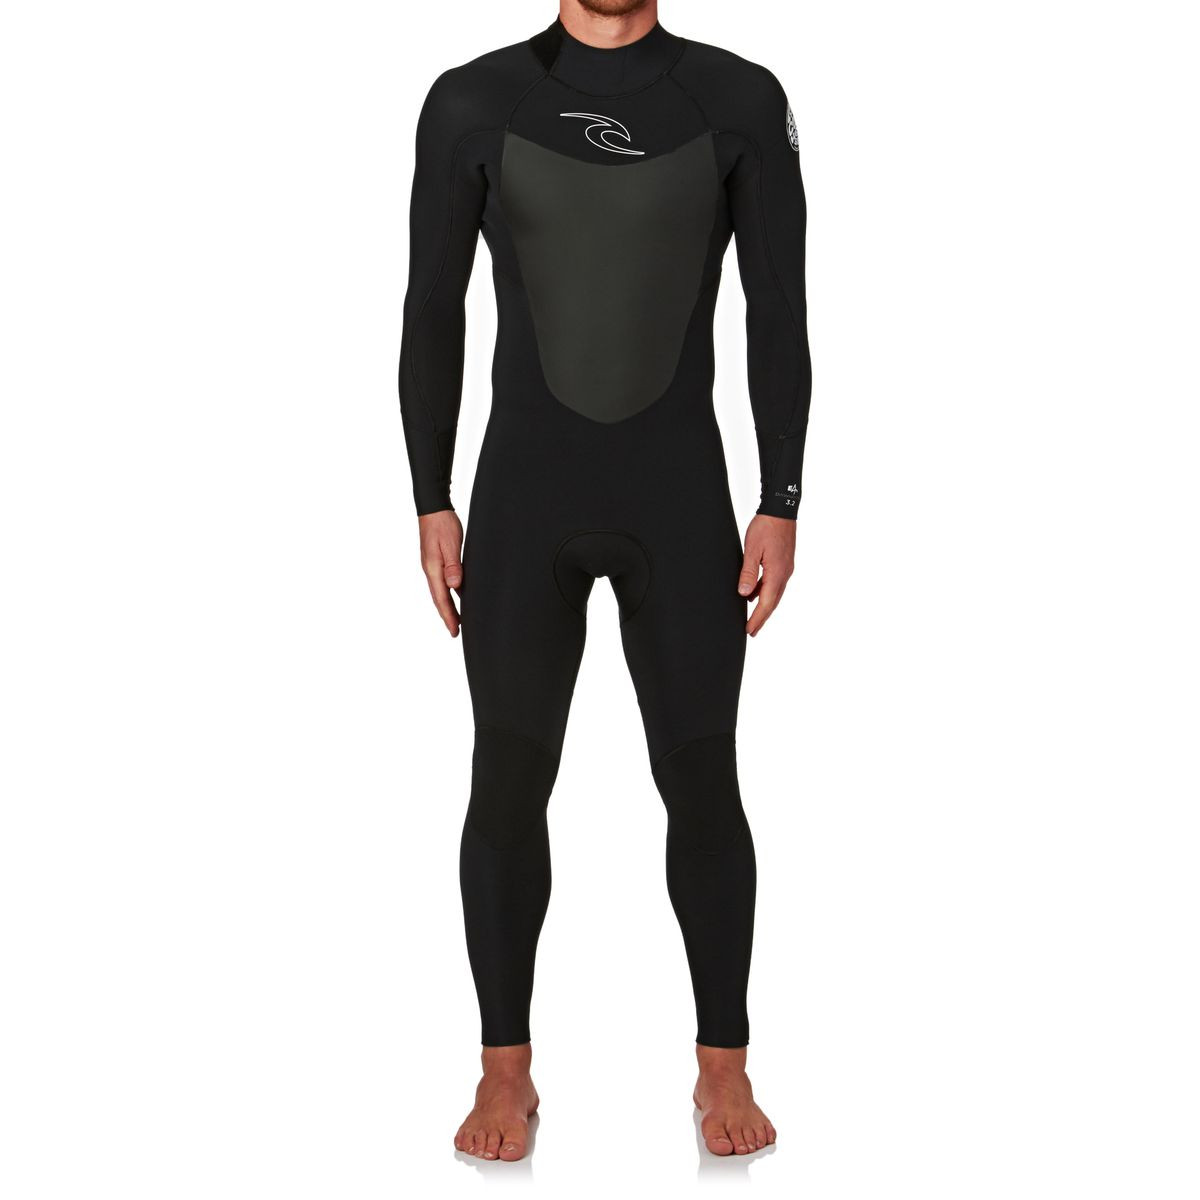 Rip Curl Dawn Patrol 3/2mm 2017 Back Zip Wetsuit - Black